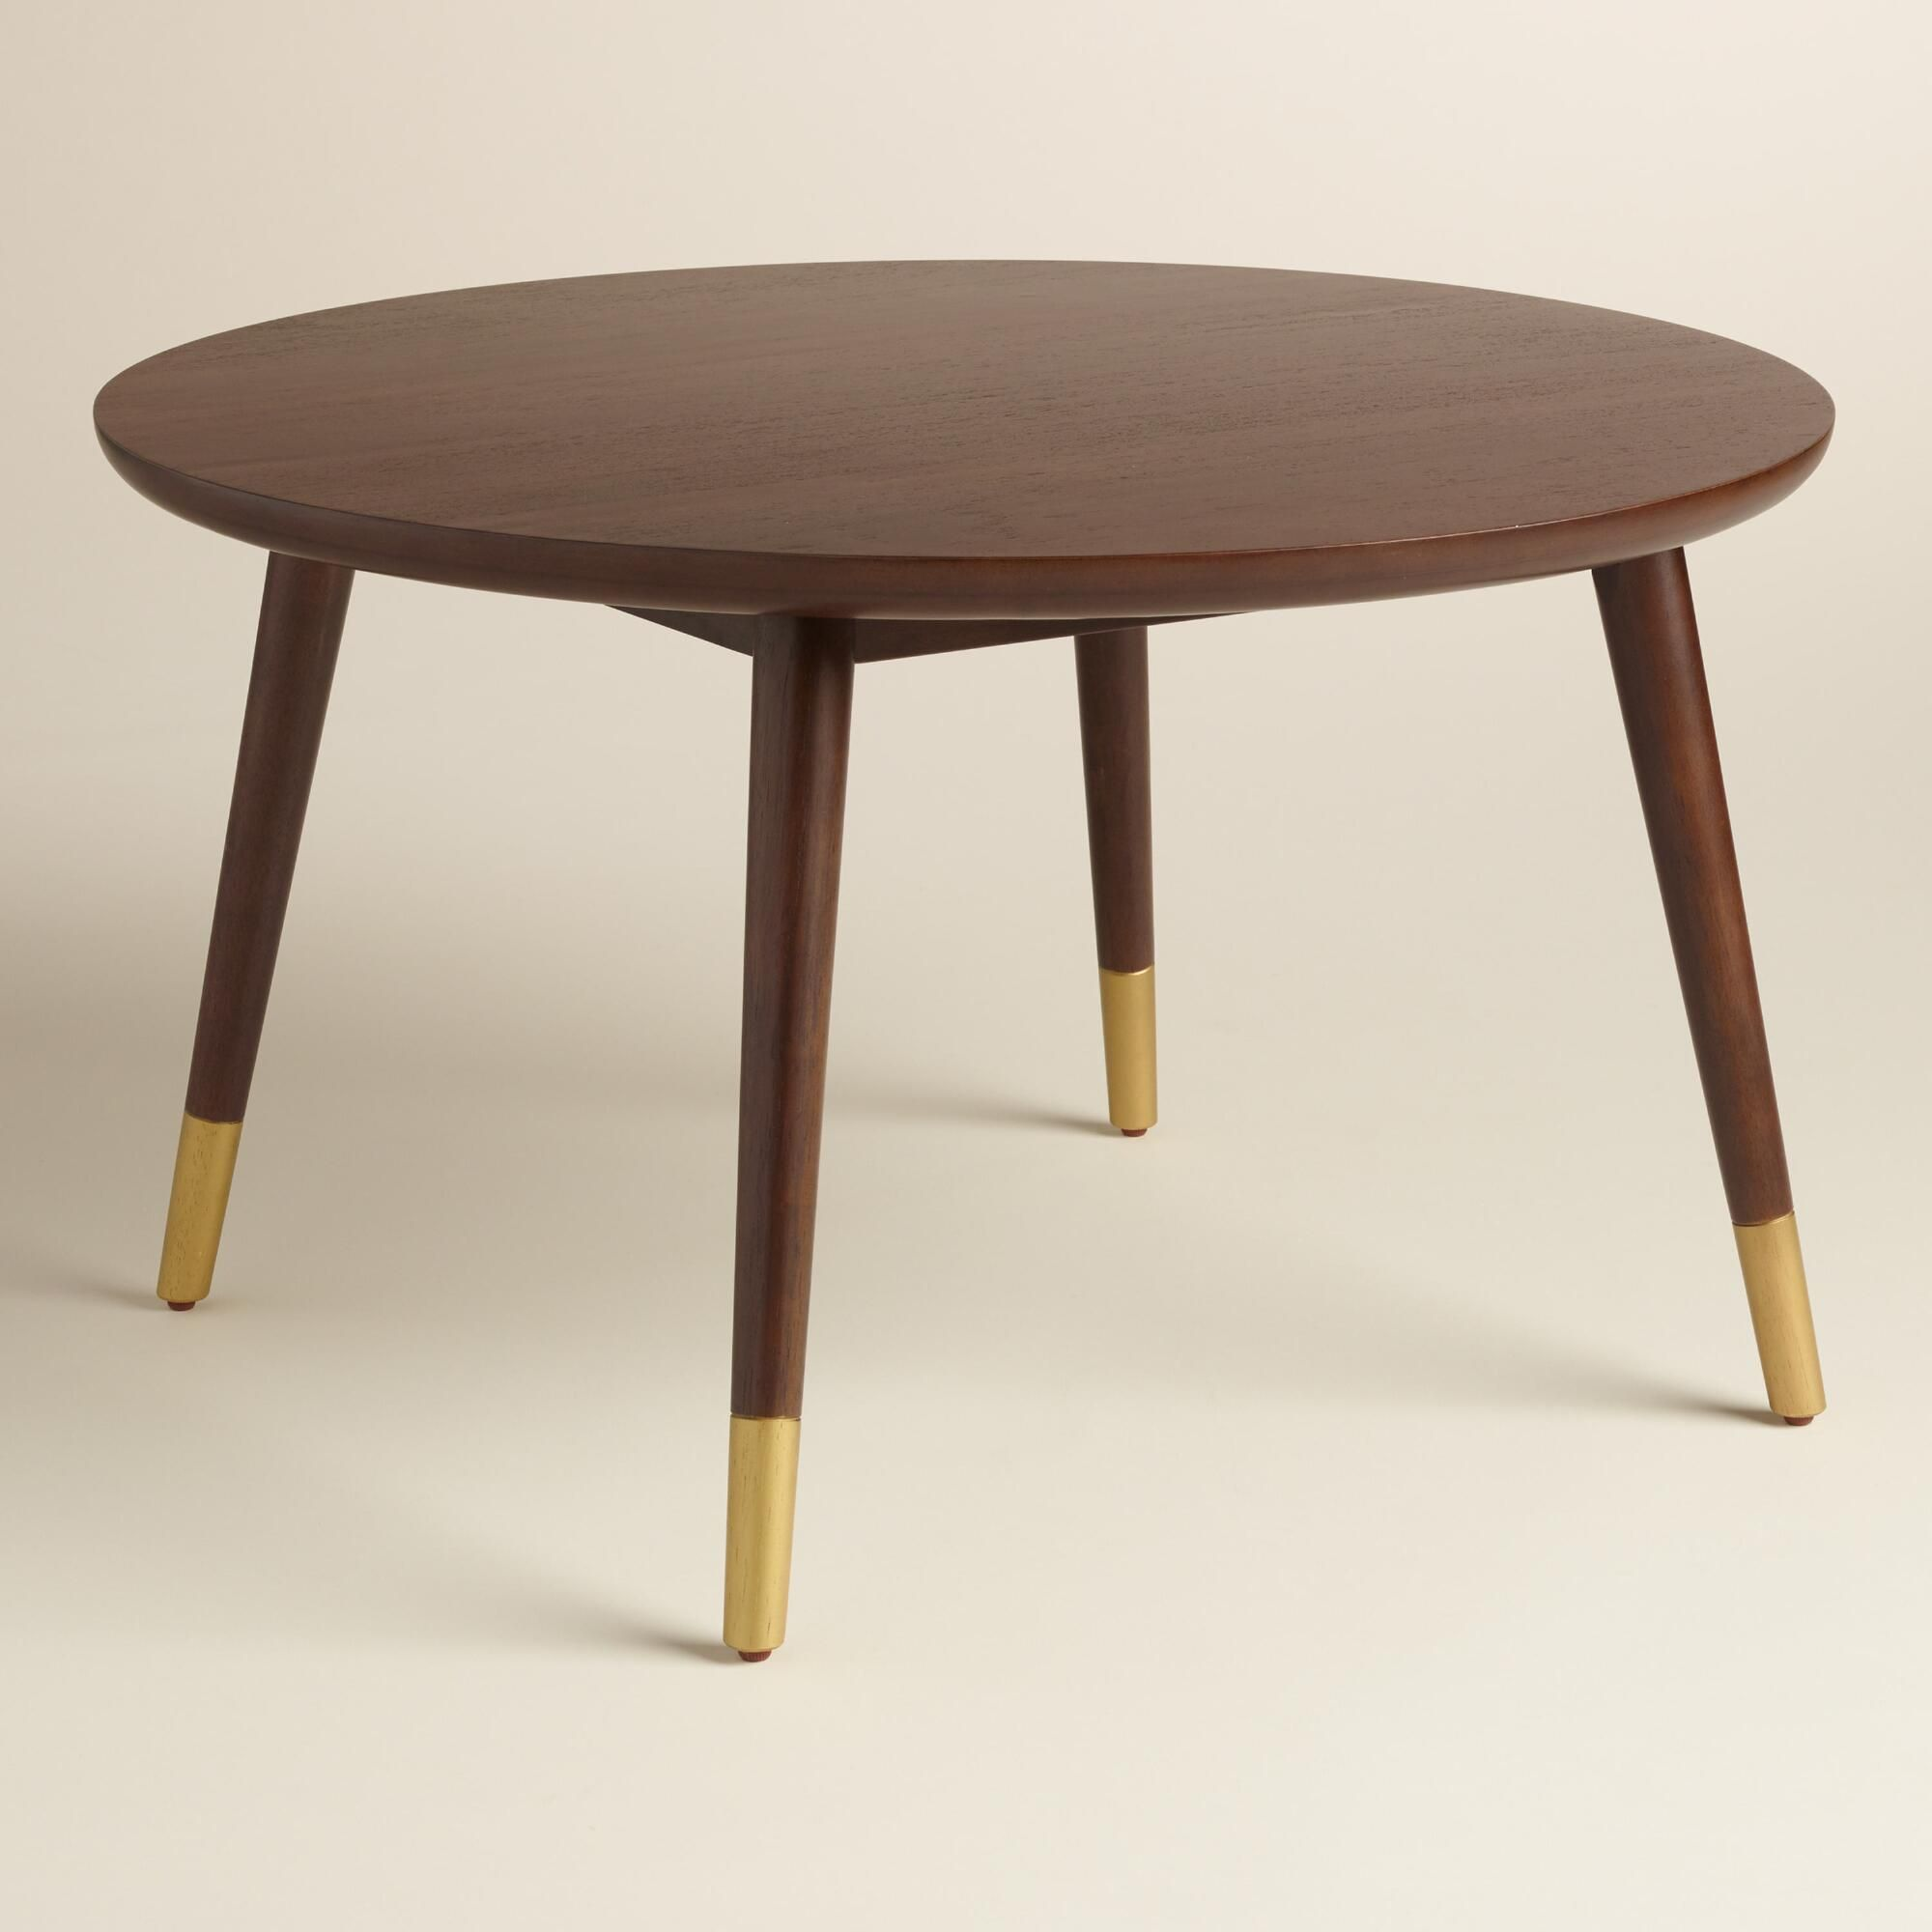 Coffee Table Legs Gold: Our Round Coffee Table Features Splayed Legs With Gold